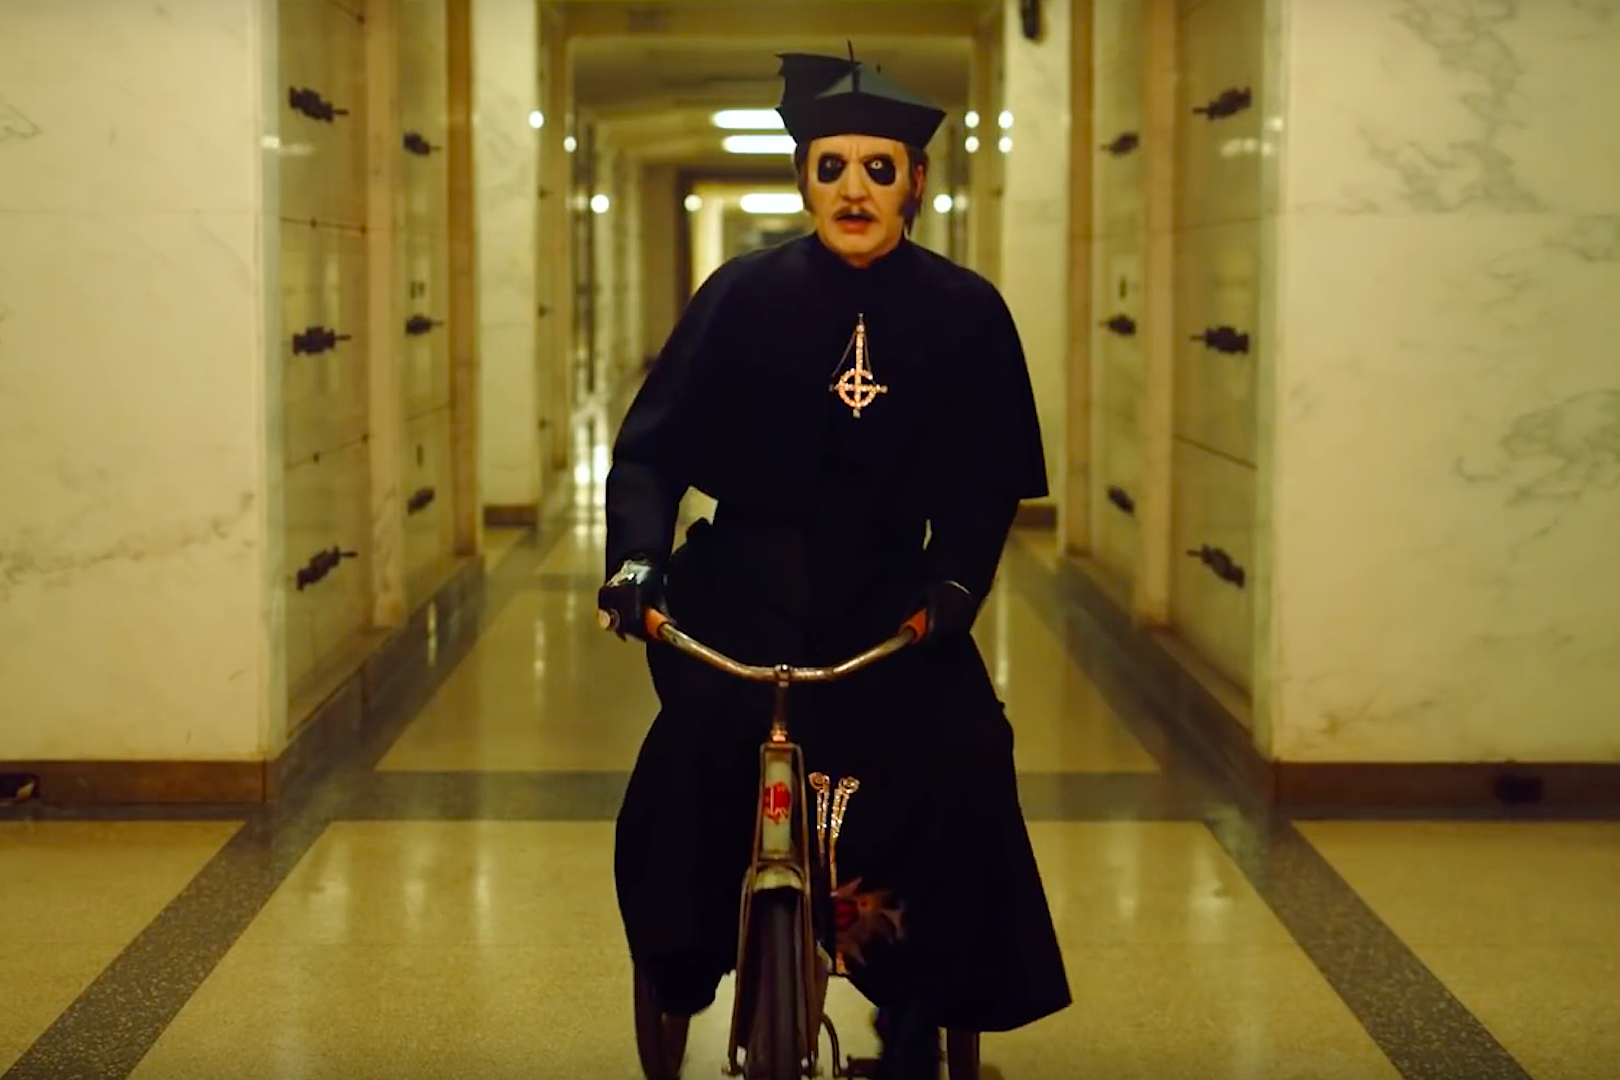 New Ghost Video Pays Homage to Stephen King's 'The Shining'